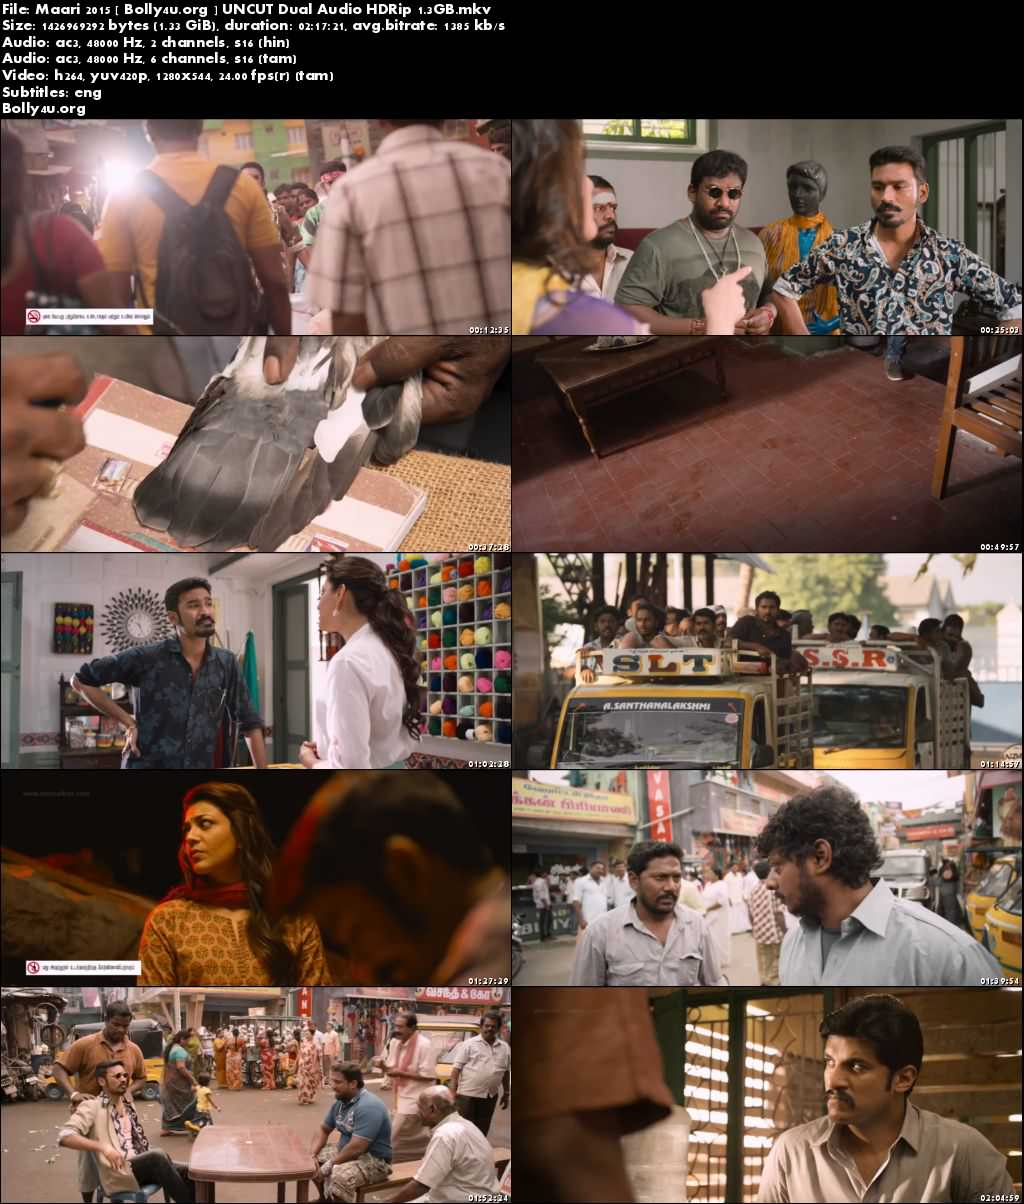 Maari 2015 HDRip 400MB UNCUT Hindi Dubbed Dual Audio 480p Download